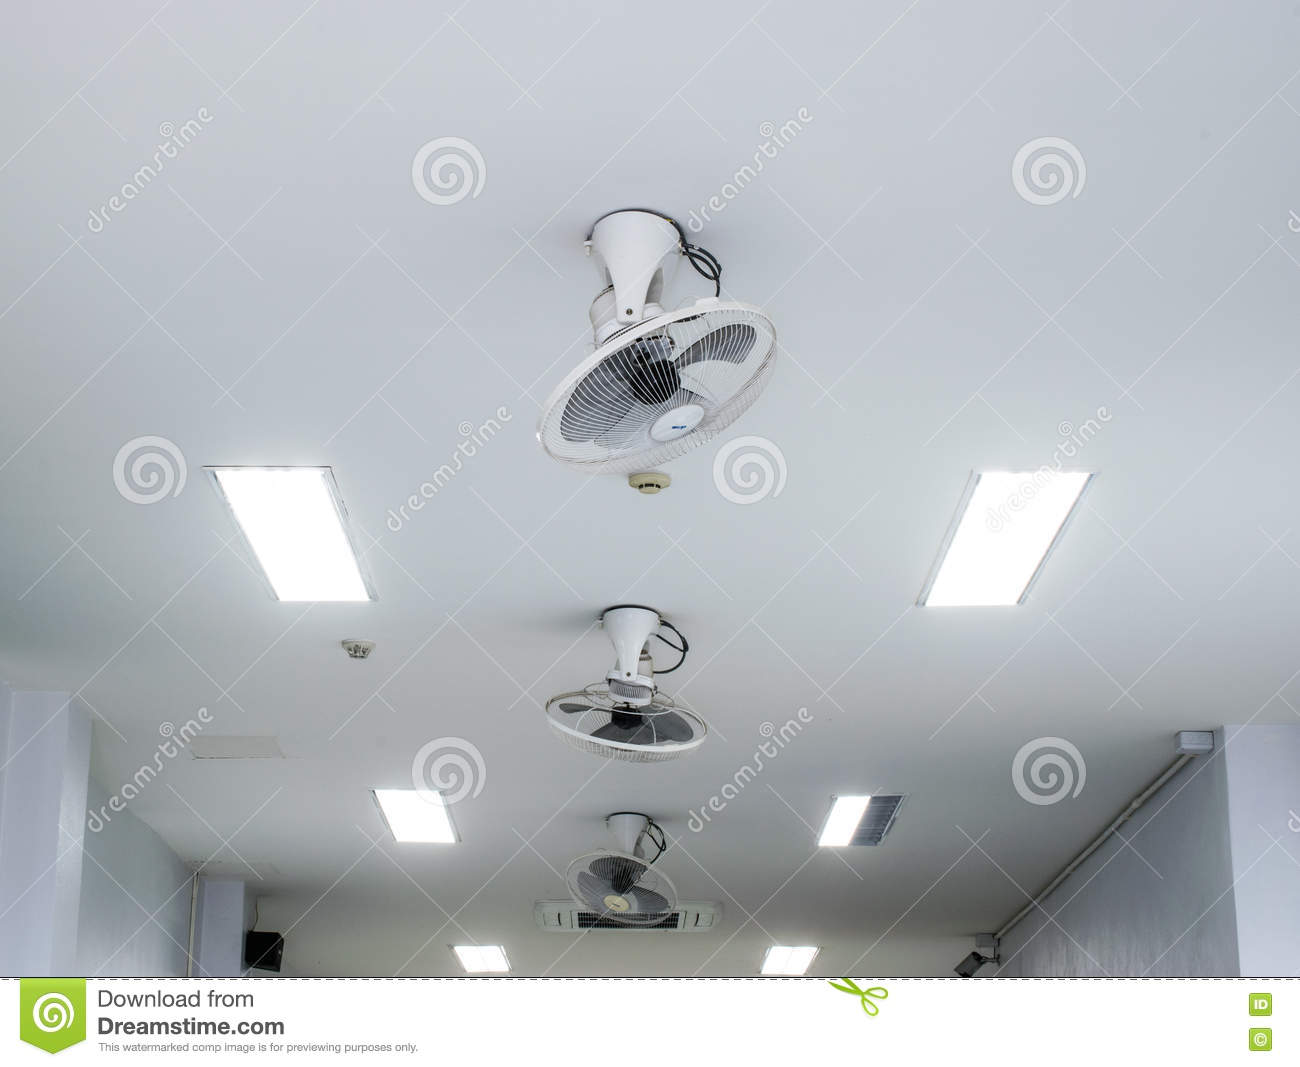 Ceiling fan on white office ceiling stock image image 72681277 ceiling fan on white office ceiling mozeypictures Gallery